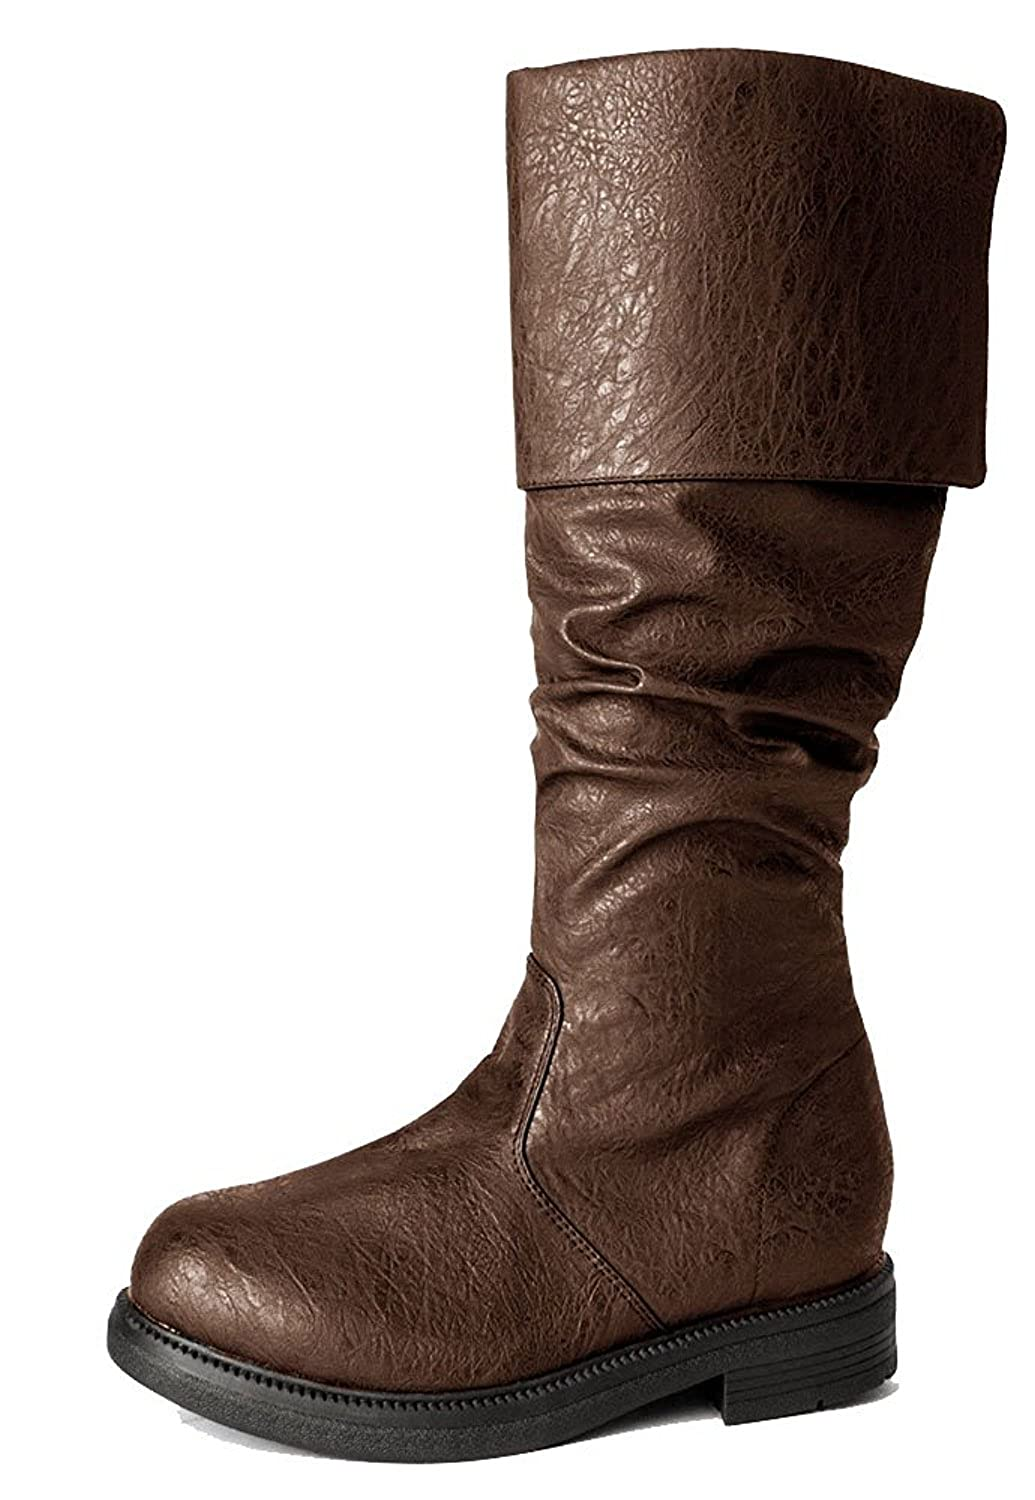 Deluxe Adult Costumes - Men's brown Assassin's Creed rustic cuffed faux leather boots